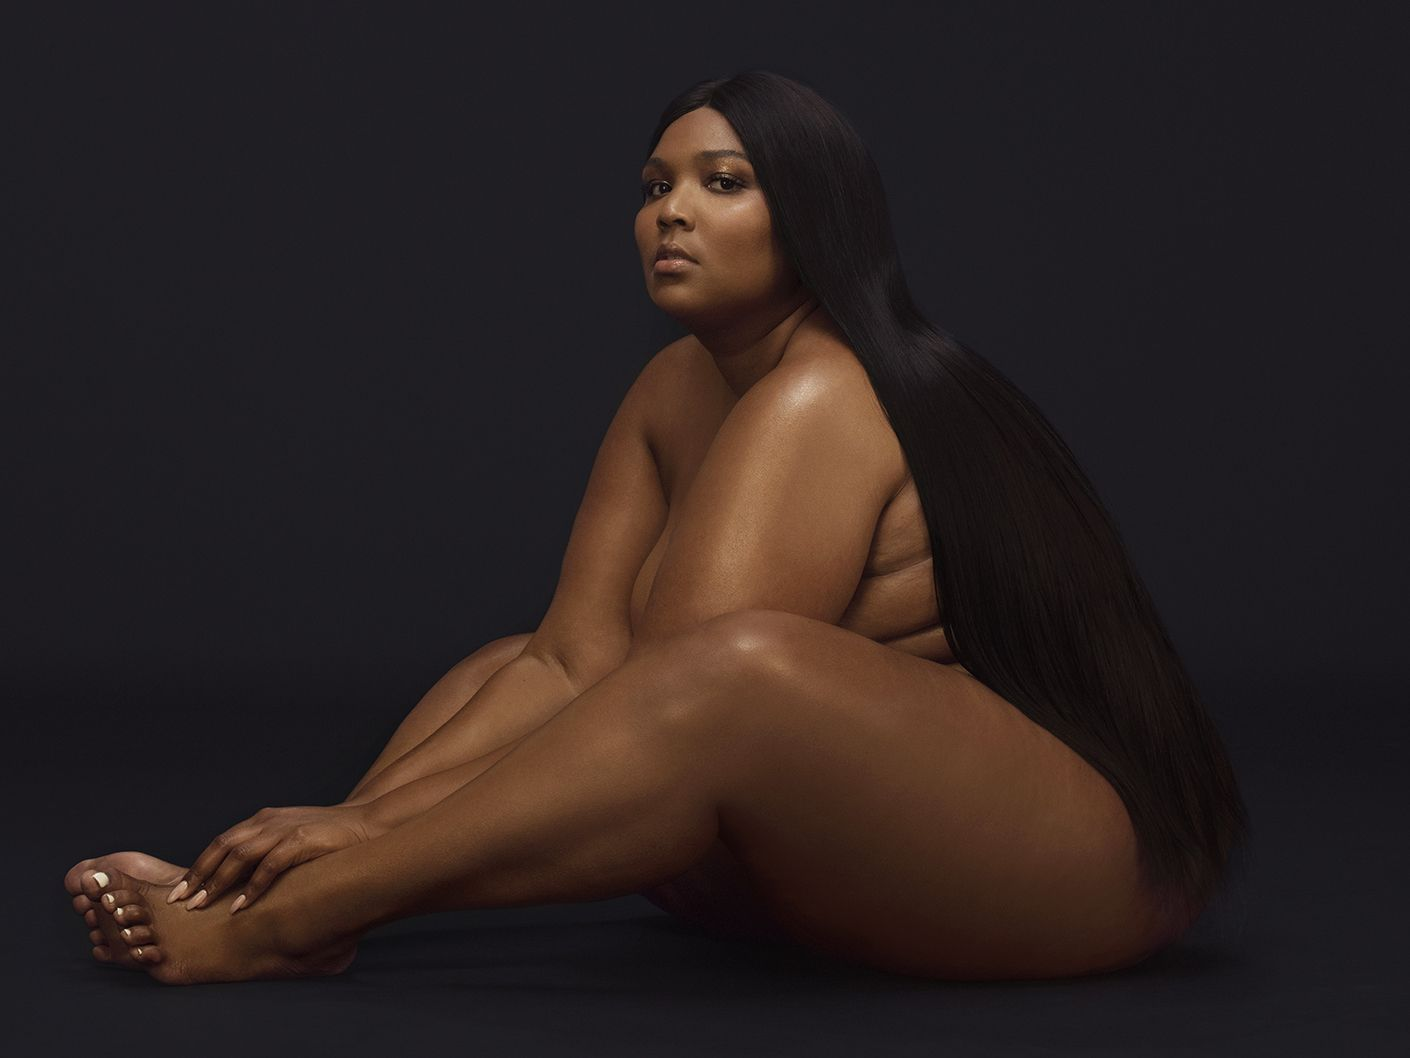 Amy O Neill Nude lizzo on feminism, self-love and bringing 'hallelujah